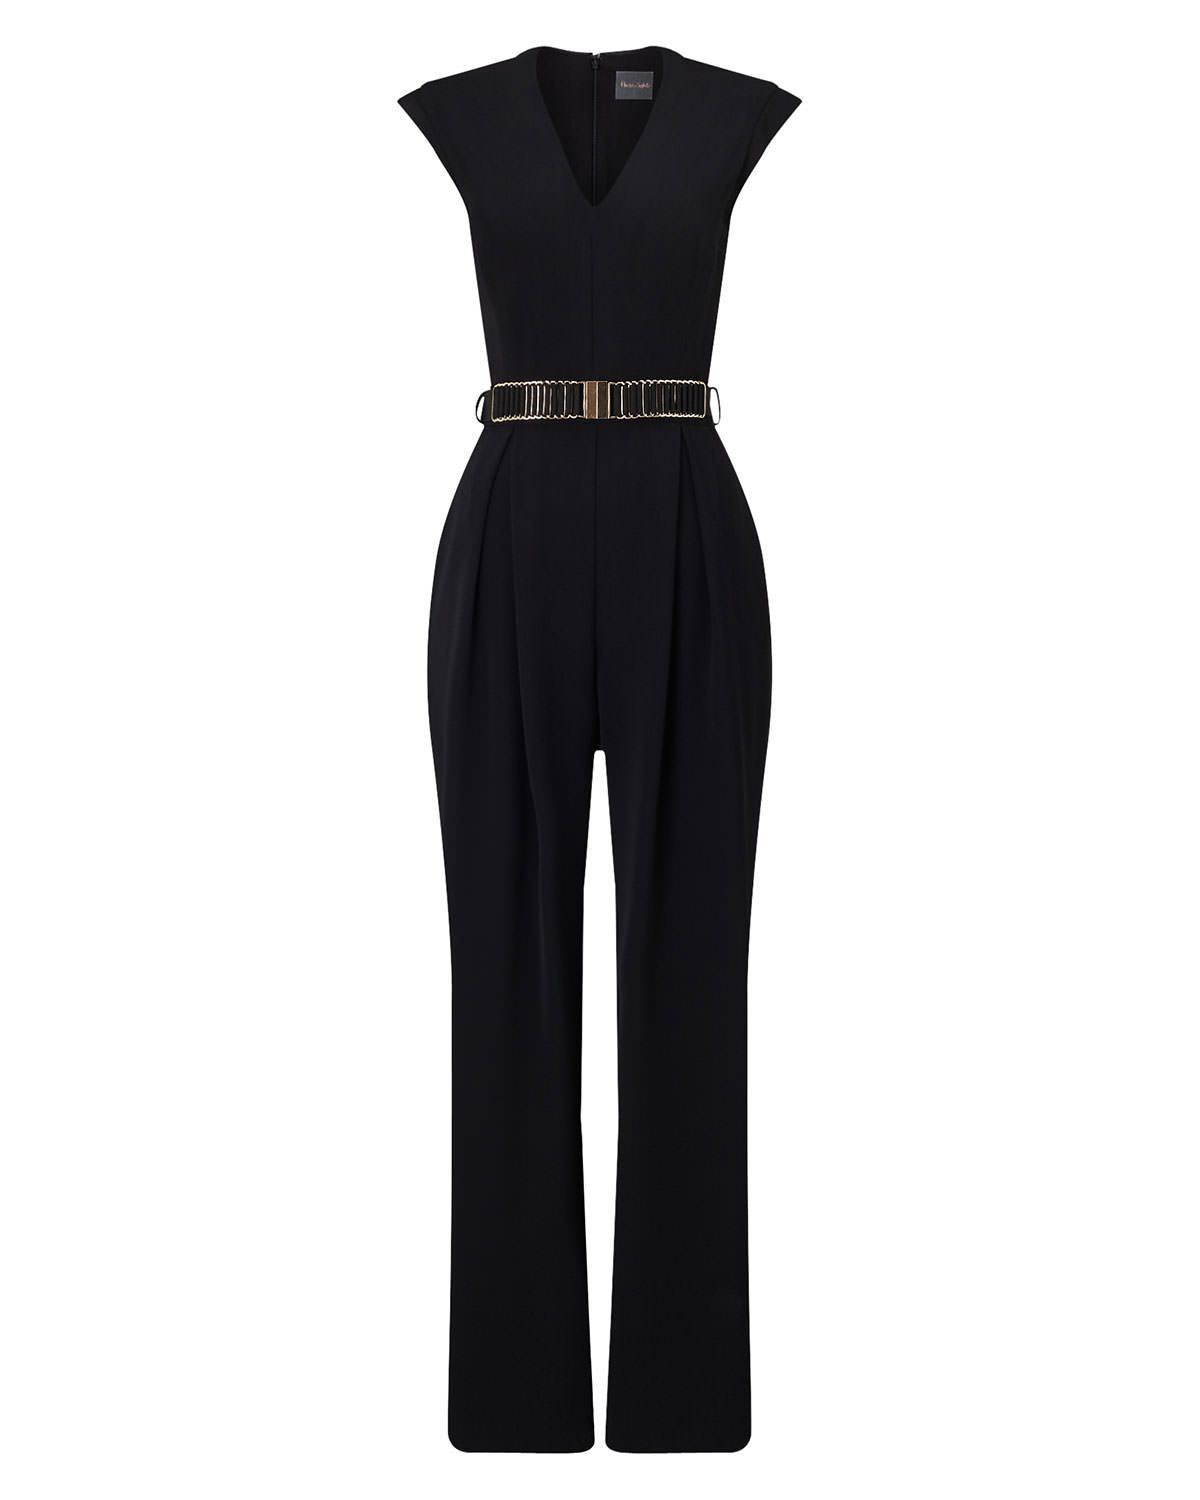 20d27050b0 Phase Eight Adelaide Belted Jumpsuit Black